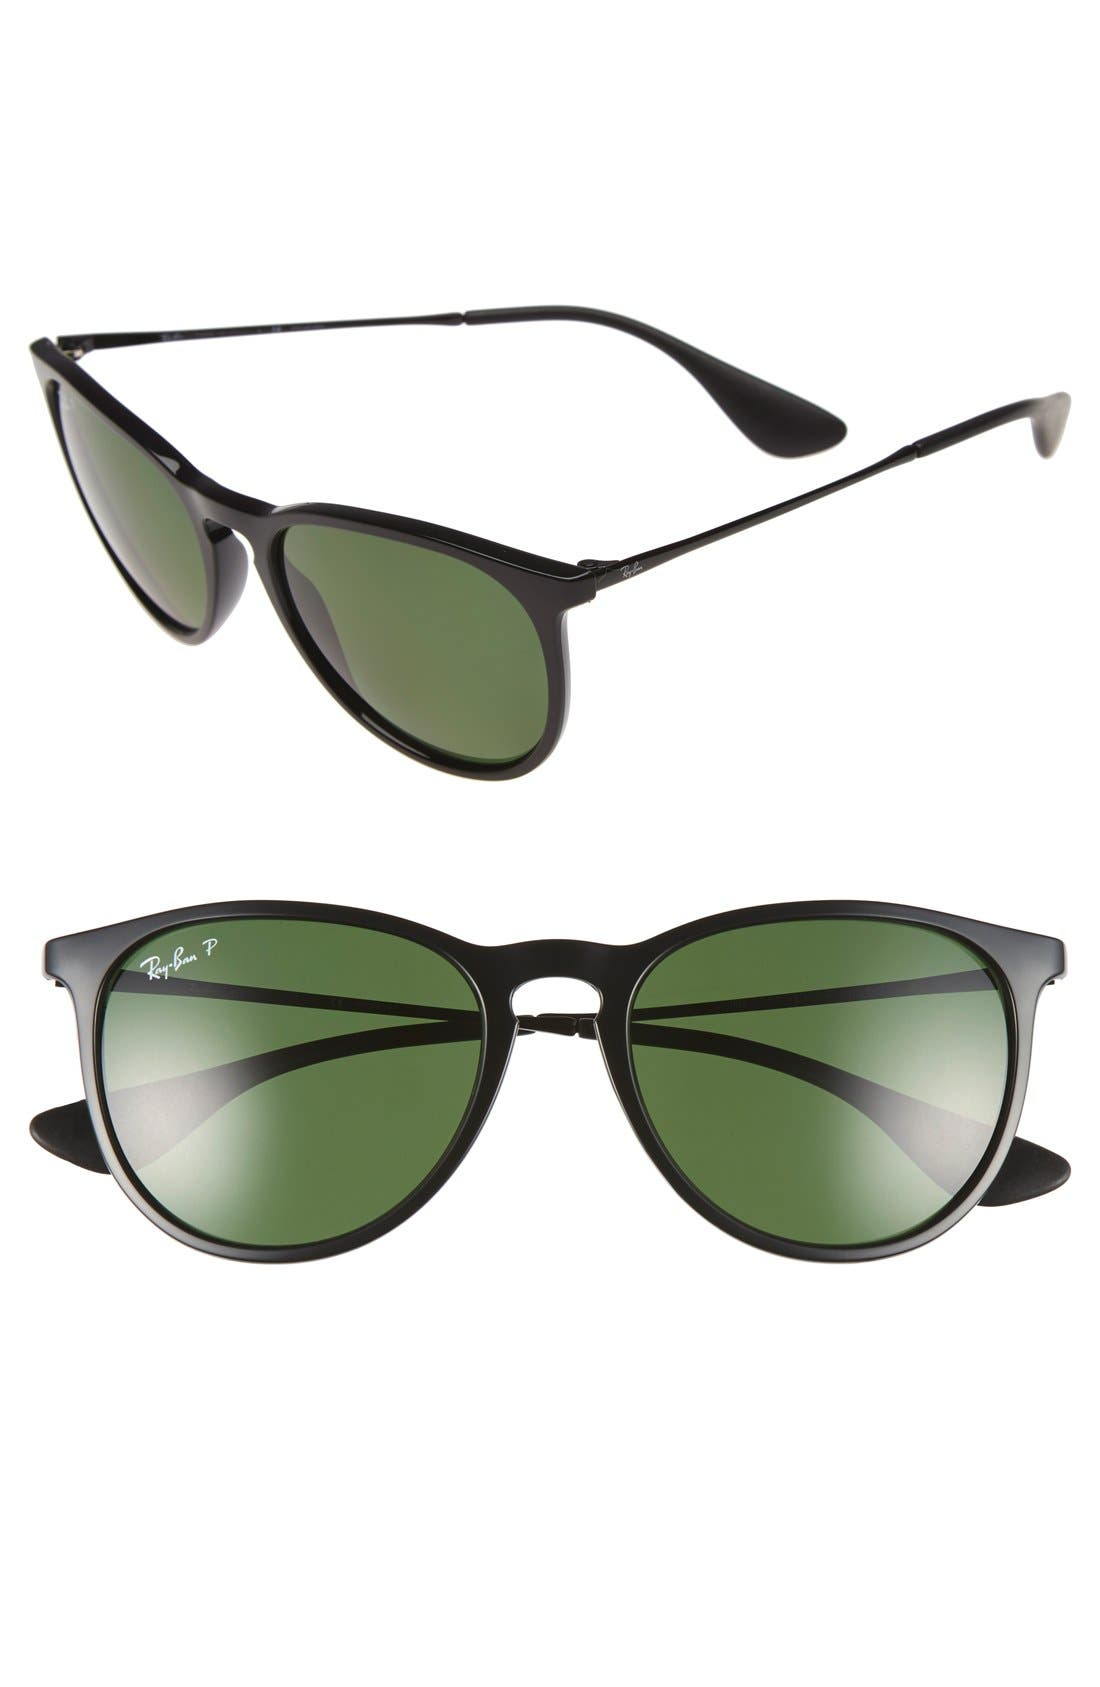 Erika Classic 54mm Sunglasses,                             Main thumbnail 1, color,                             Black/ Green